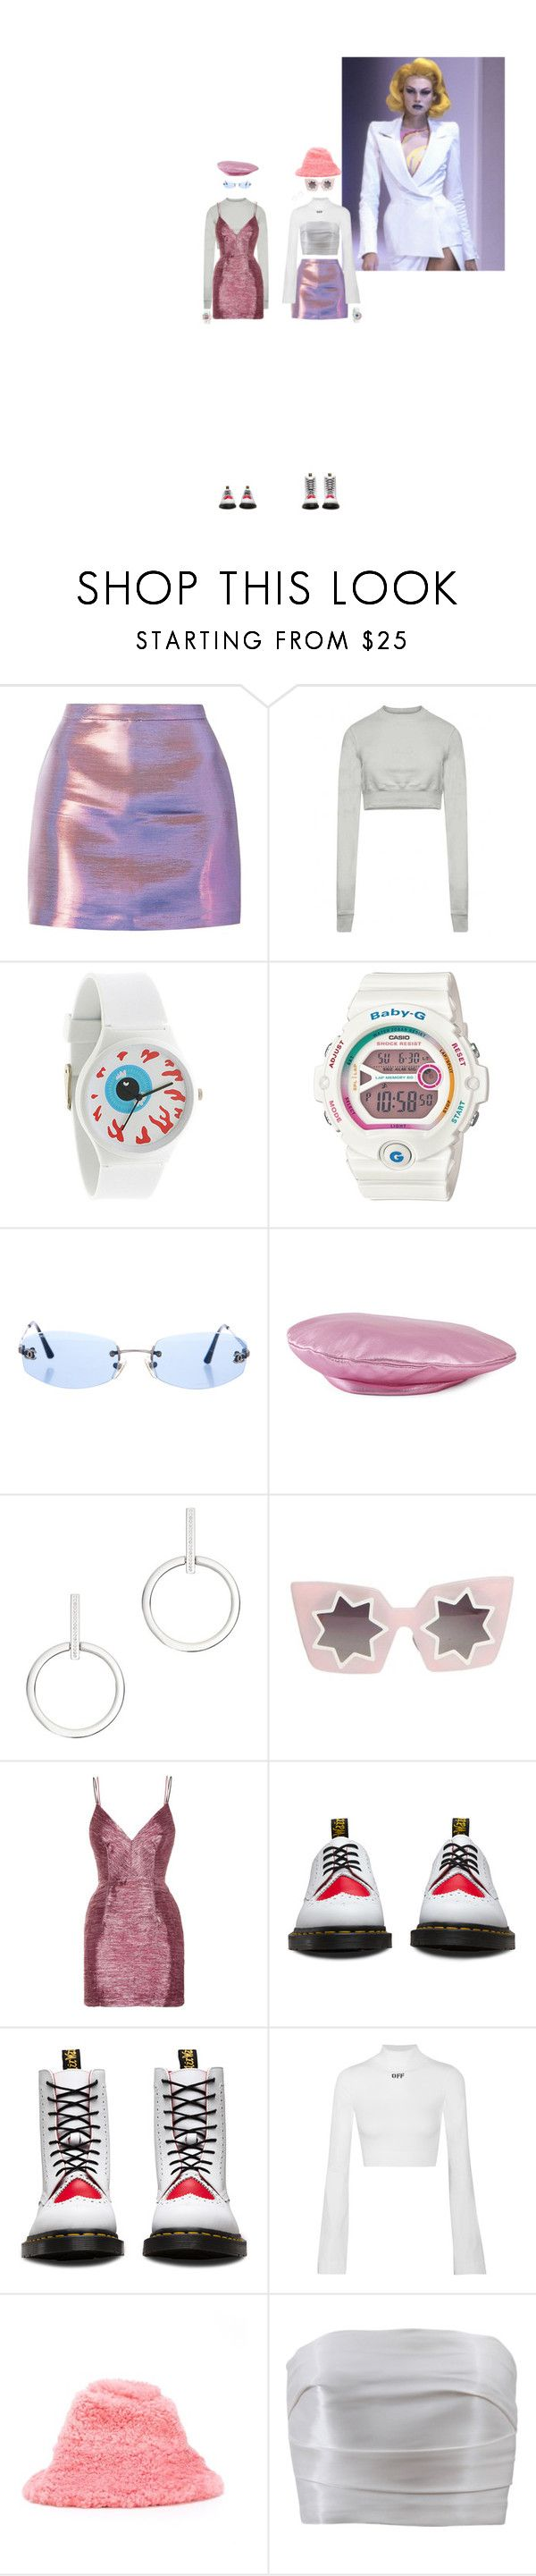 """""""COOL HOT SWEET LOVE"""" by rojinnn ❤ liked on Polyvore featuring Rick Owens, Mishka, Casio, Chanel, Gucci, Vita Fede, Markus Lupfer, Alex Perry, Dr. Martens and Off-White"""